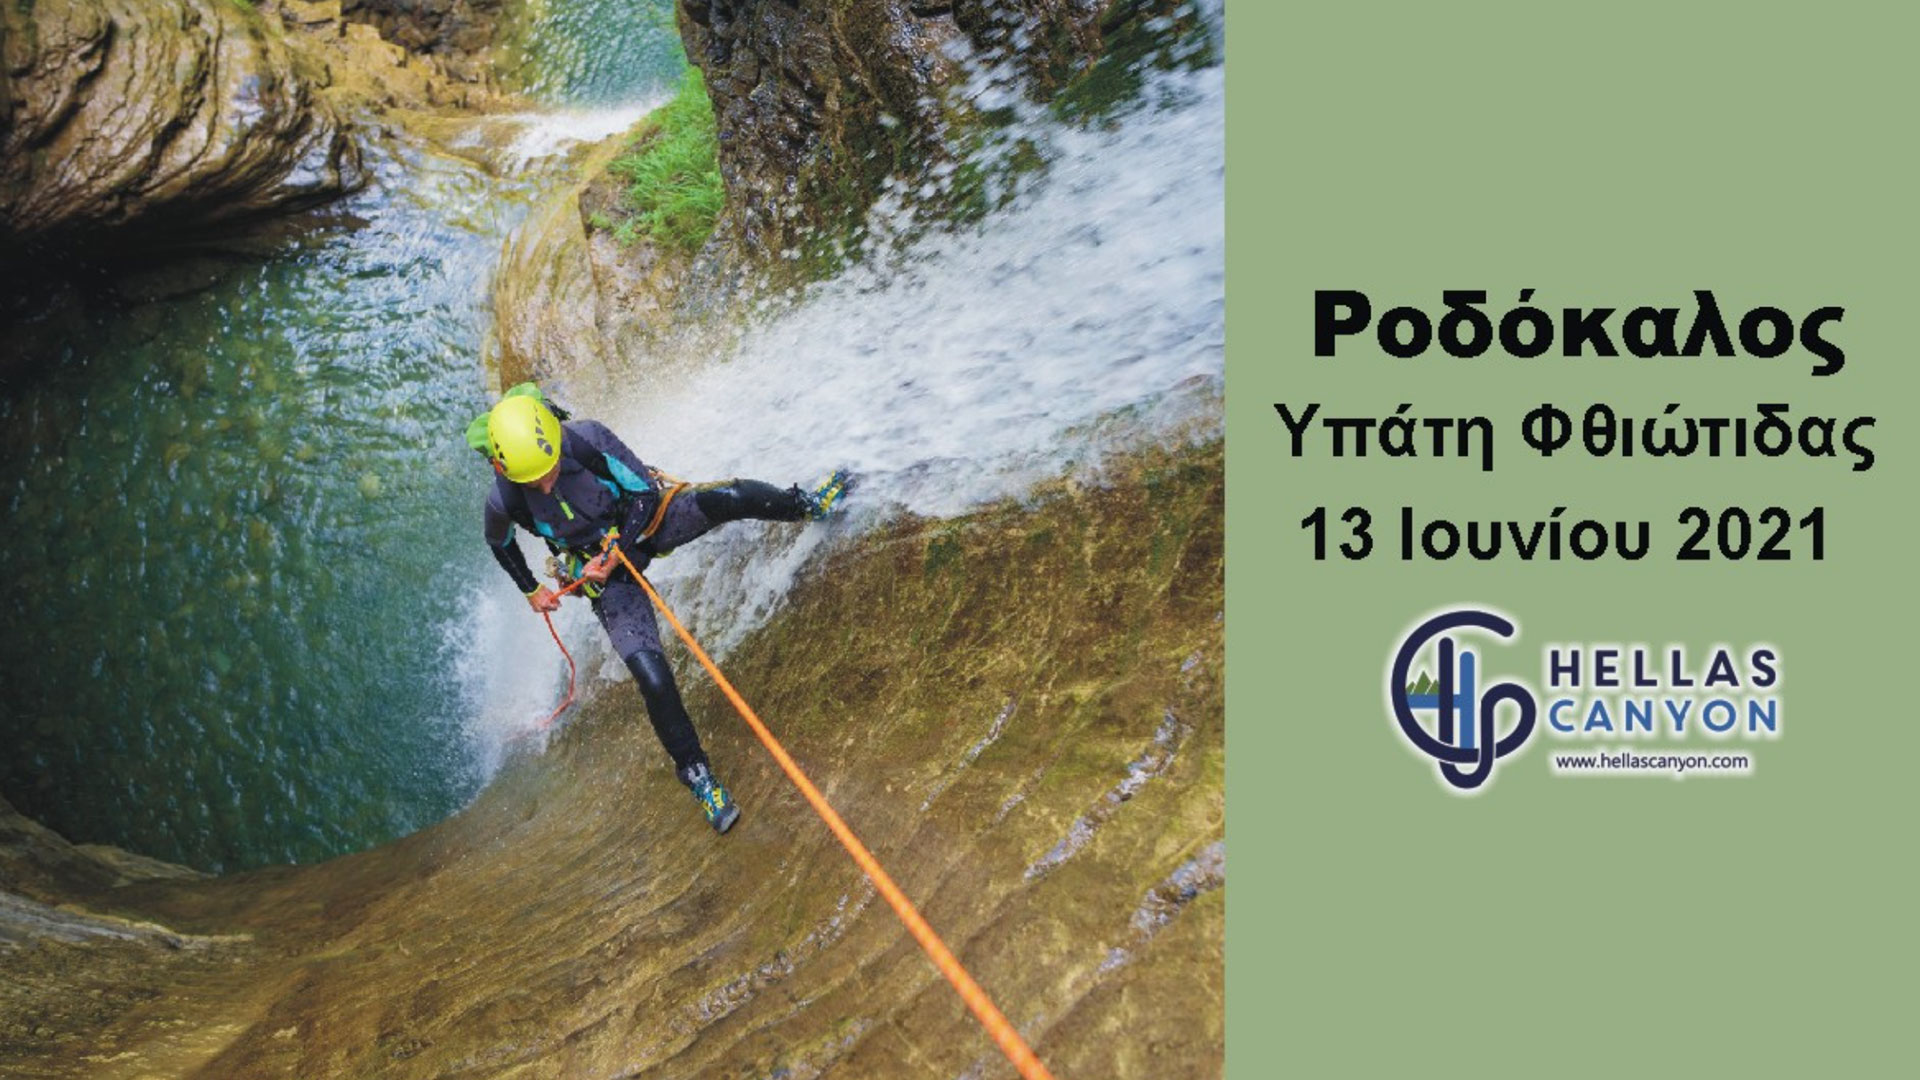 Banner for canyoning in Ypati, Greece